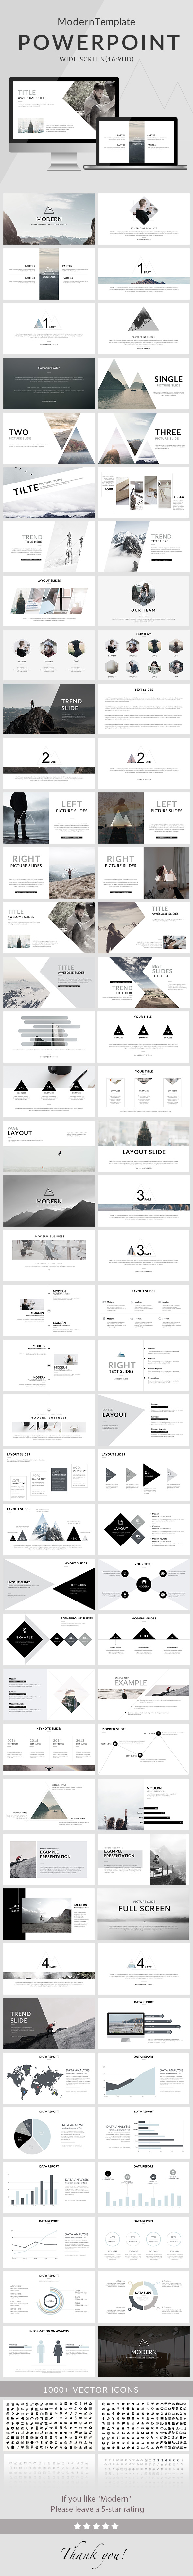 Modern - Powerpoint Template - Creative PowerPoint Templates